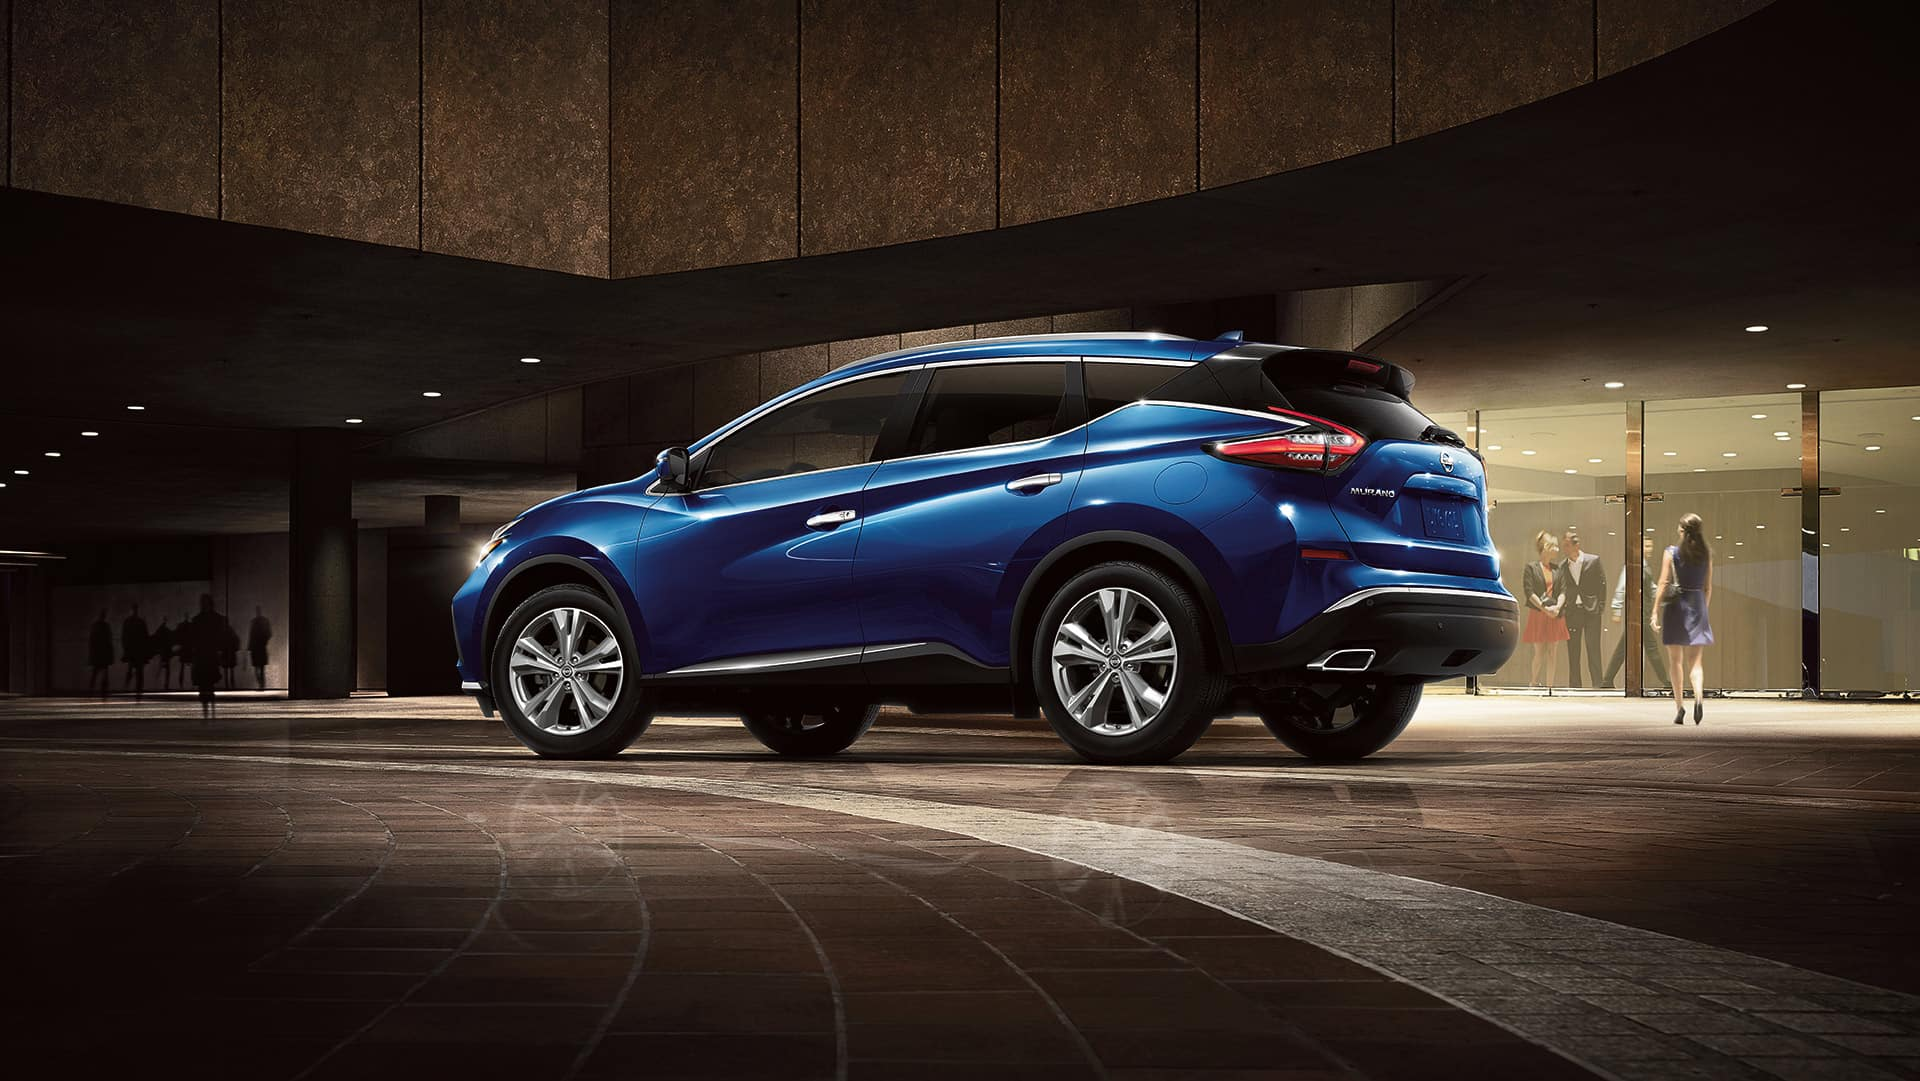 Boch Nissan is a Car Dealership near Canton, MA | Blue 2020 Nissan Murano parked in the dark